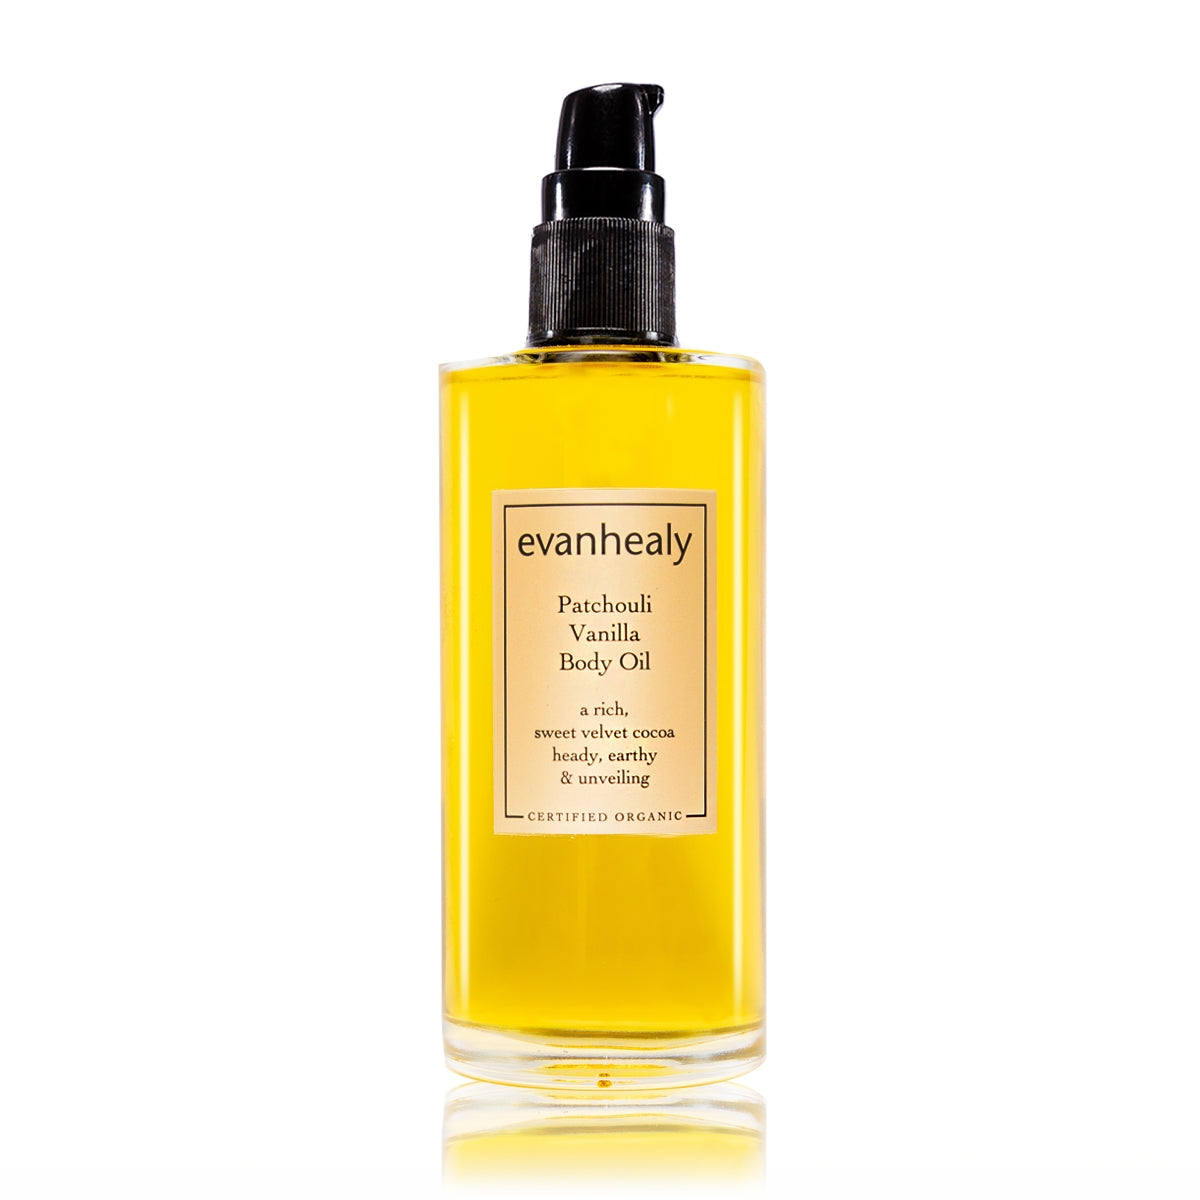 Patchouli Vanilla Body Oil